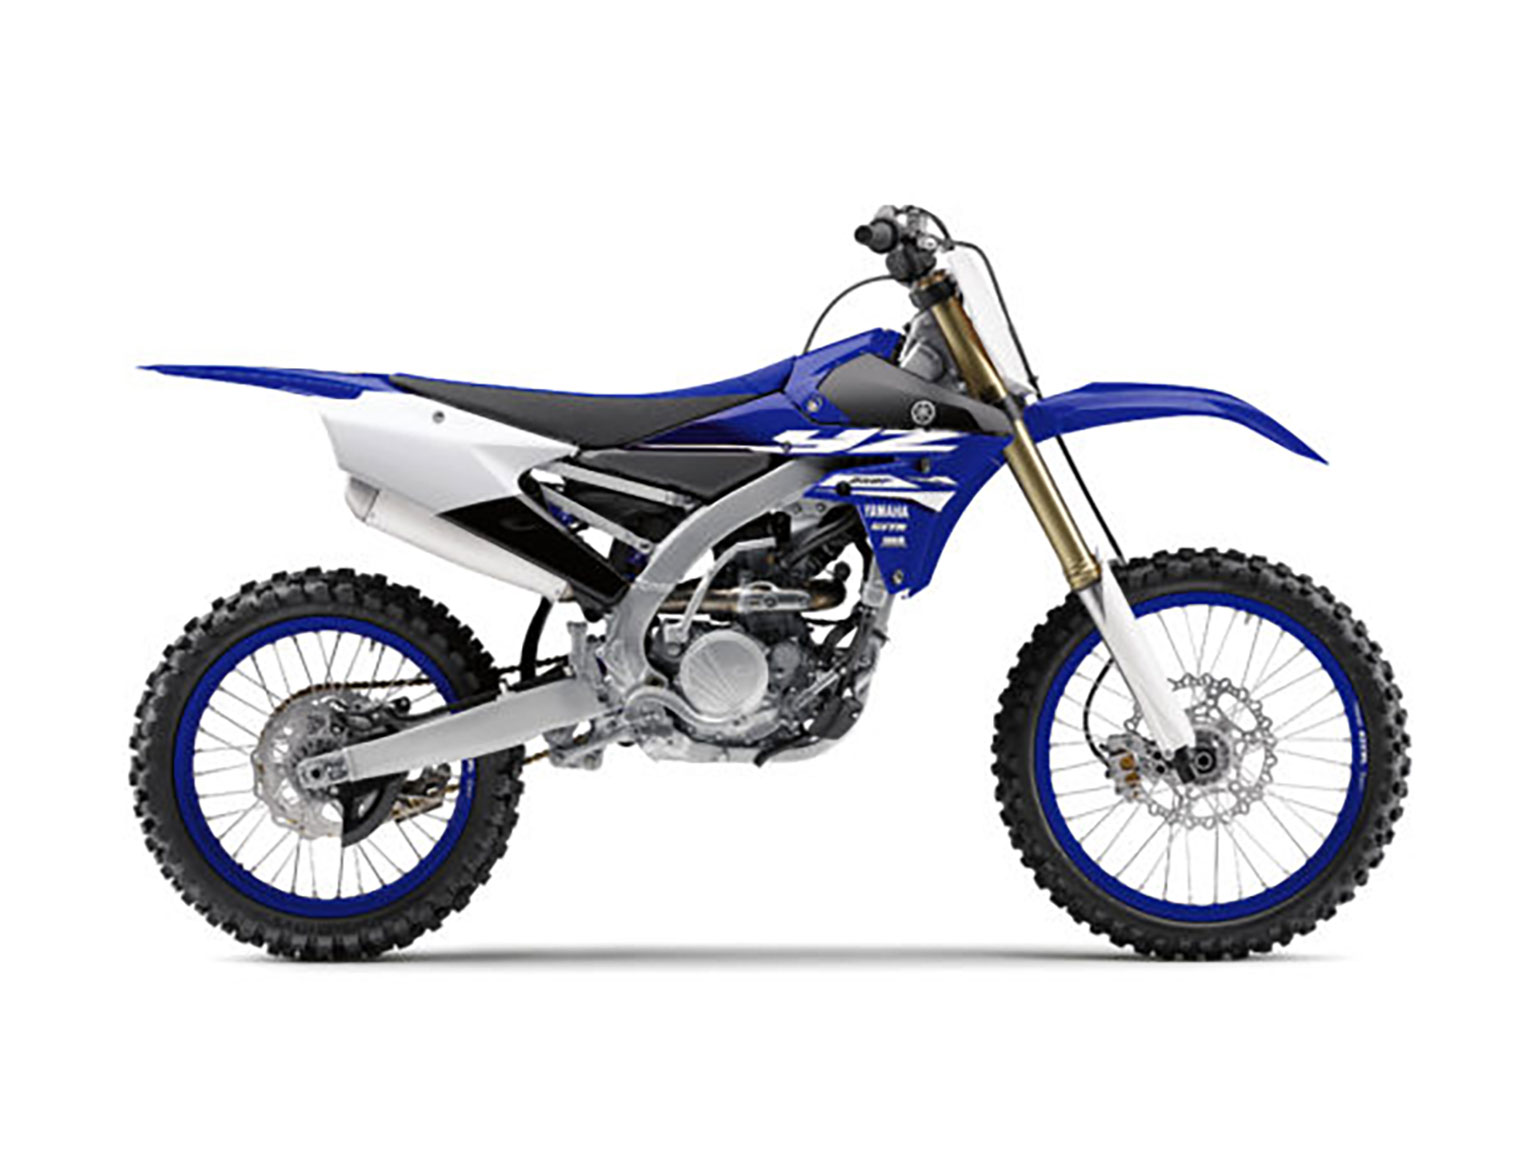 2018 YZF250 gets blue rims and new stickers